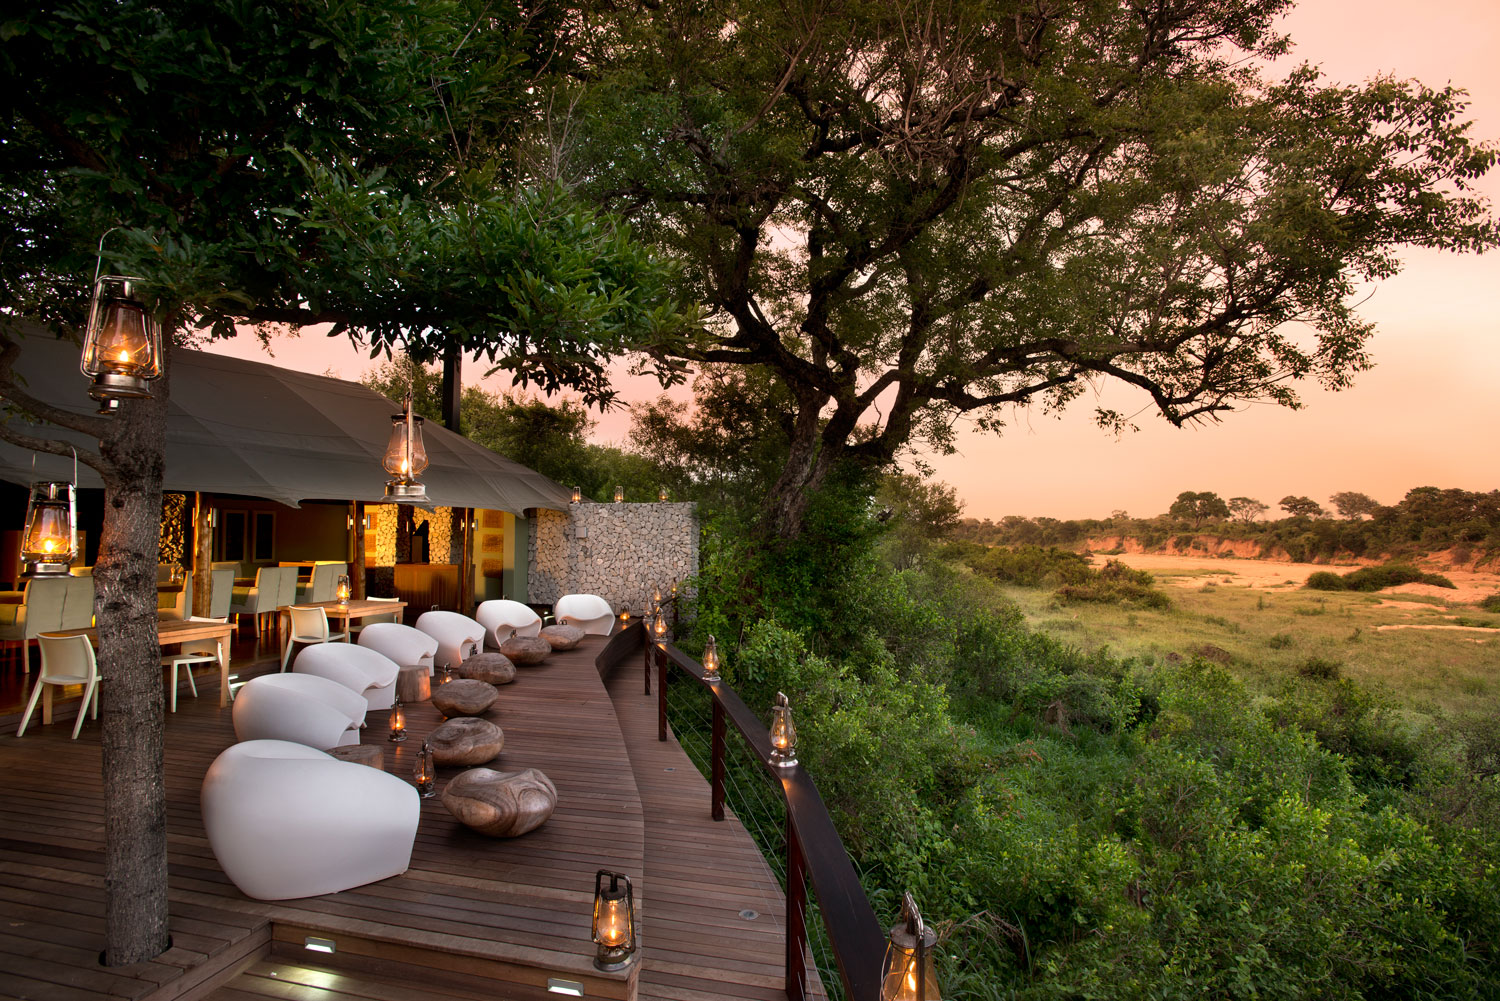 andBeyond Ngala Tented Camp in kruger national park south africa